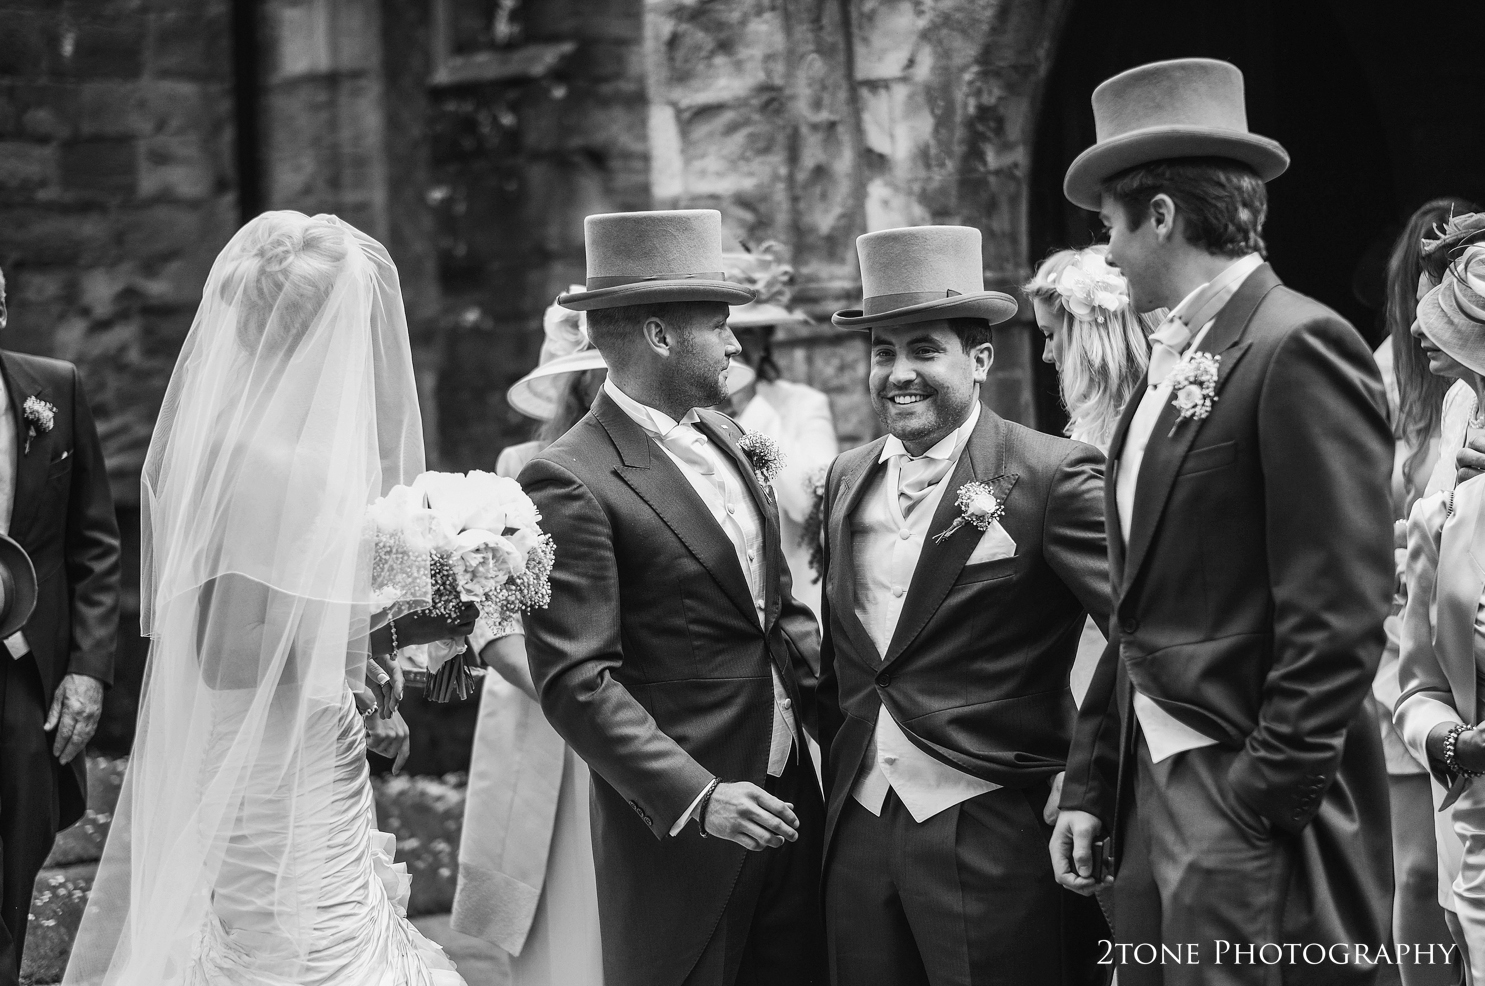 guests greeting the bride and groom at St Brandon's church, Brancepeth, Durham.  Wedding photography by www.2tonephotography.co.uk